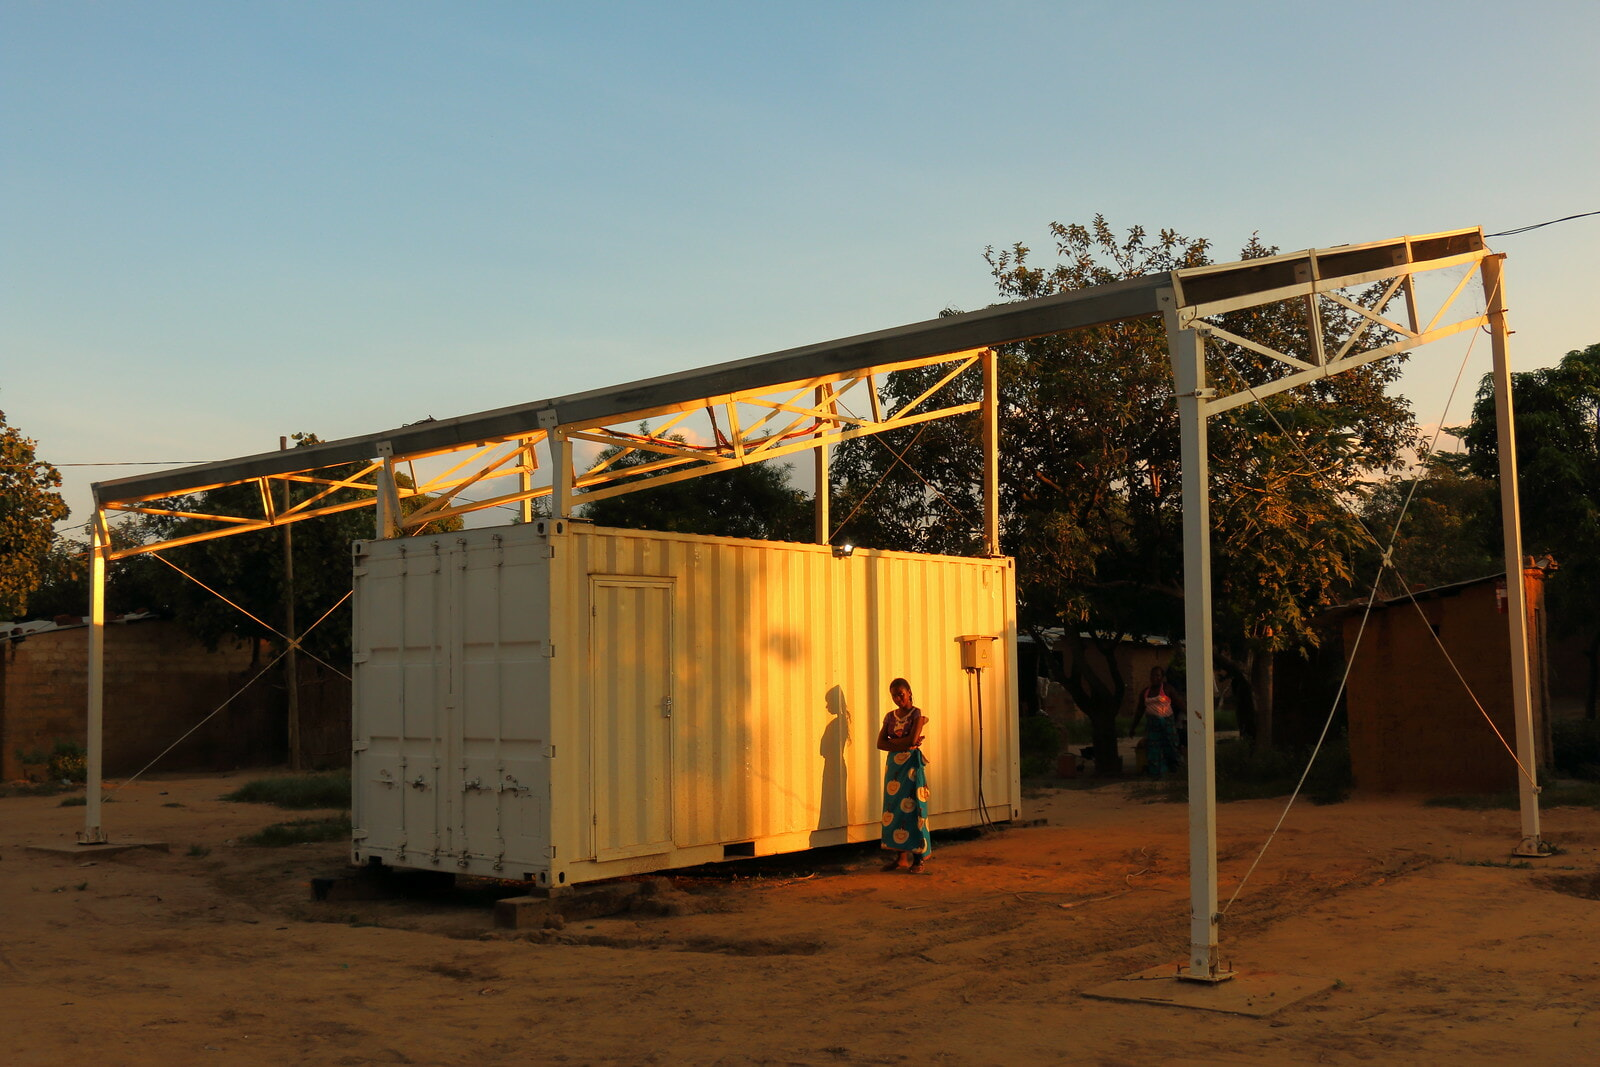 Woman in rural Tanzania standing next to a solar home system